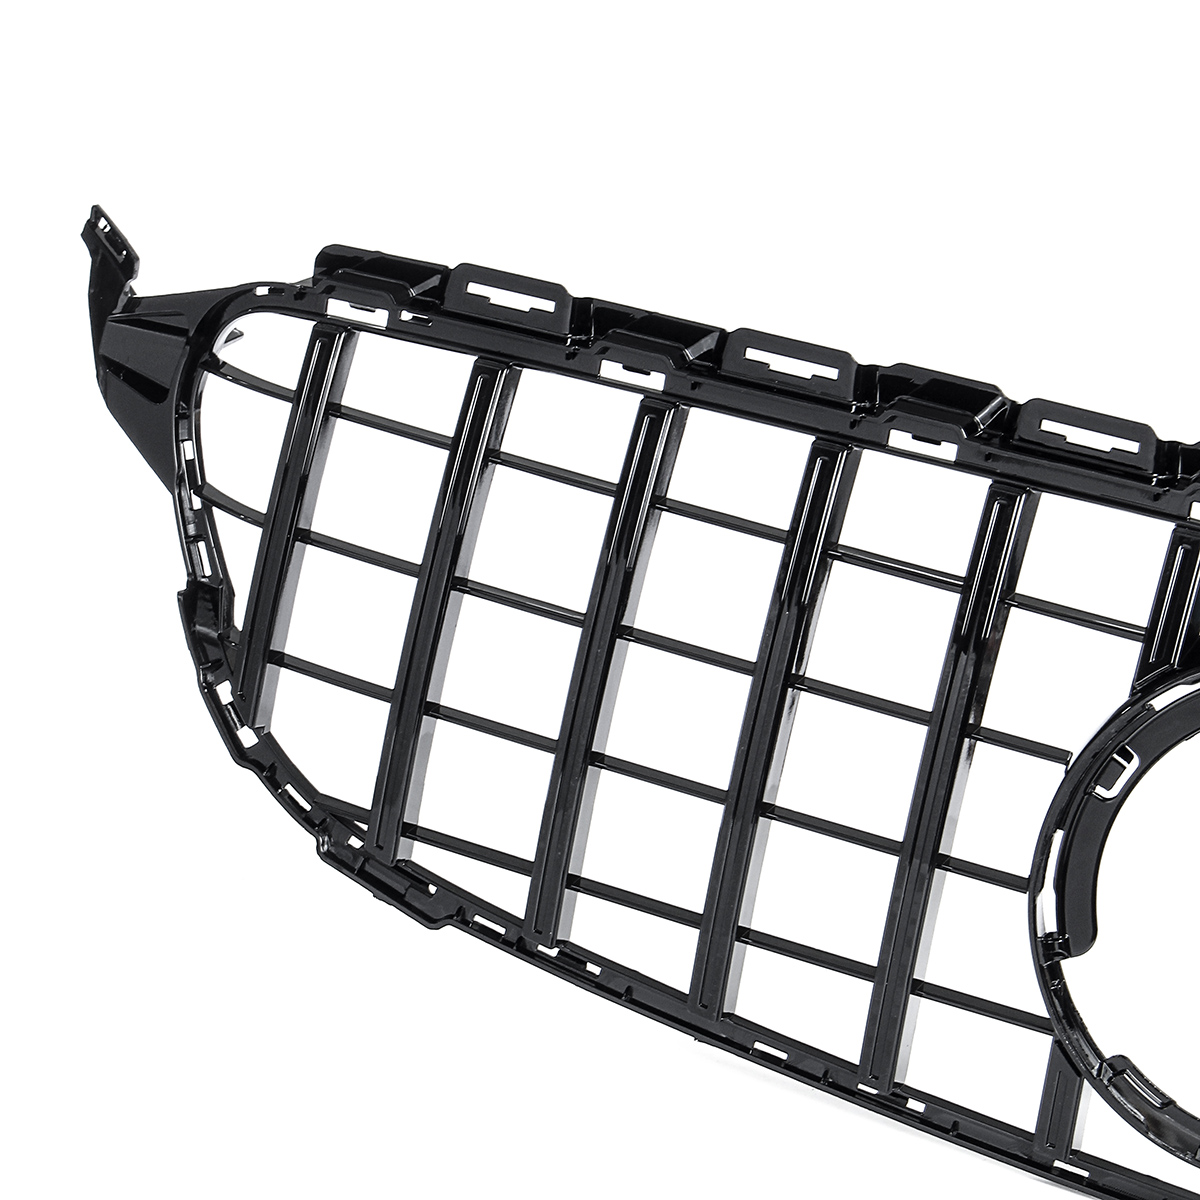 Black GT R AMG Style Grill Grille Front Bumper For Mercedes Benz W205 C250 C300 2019